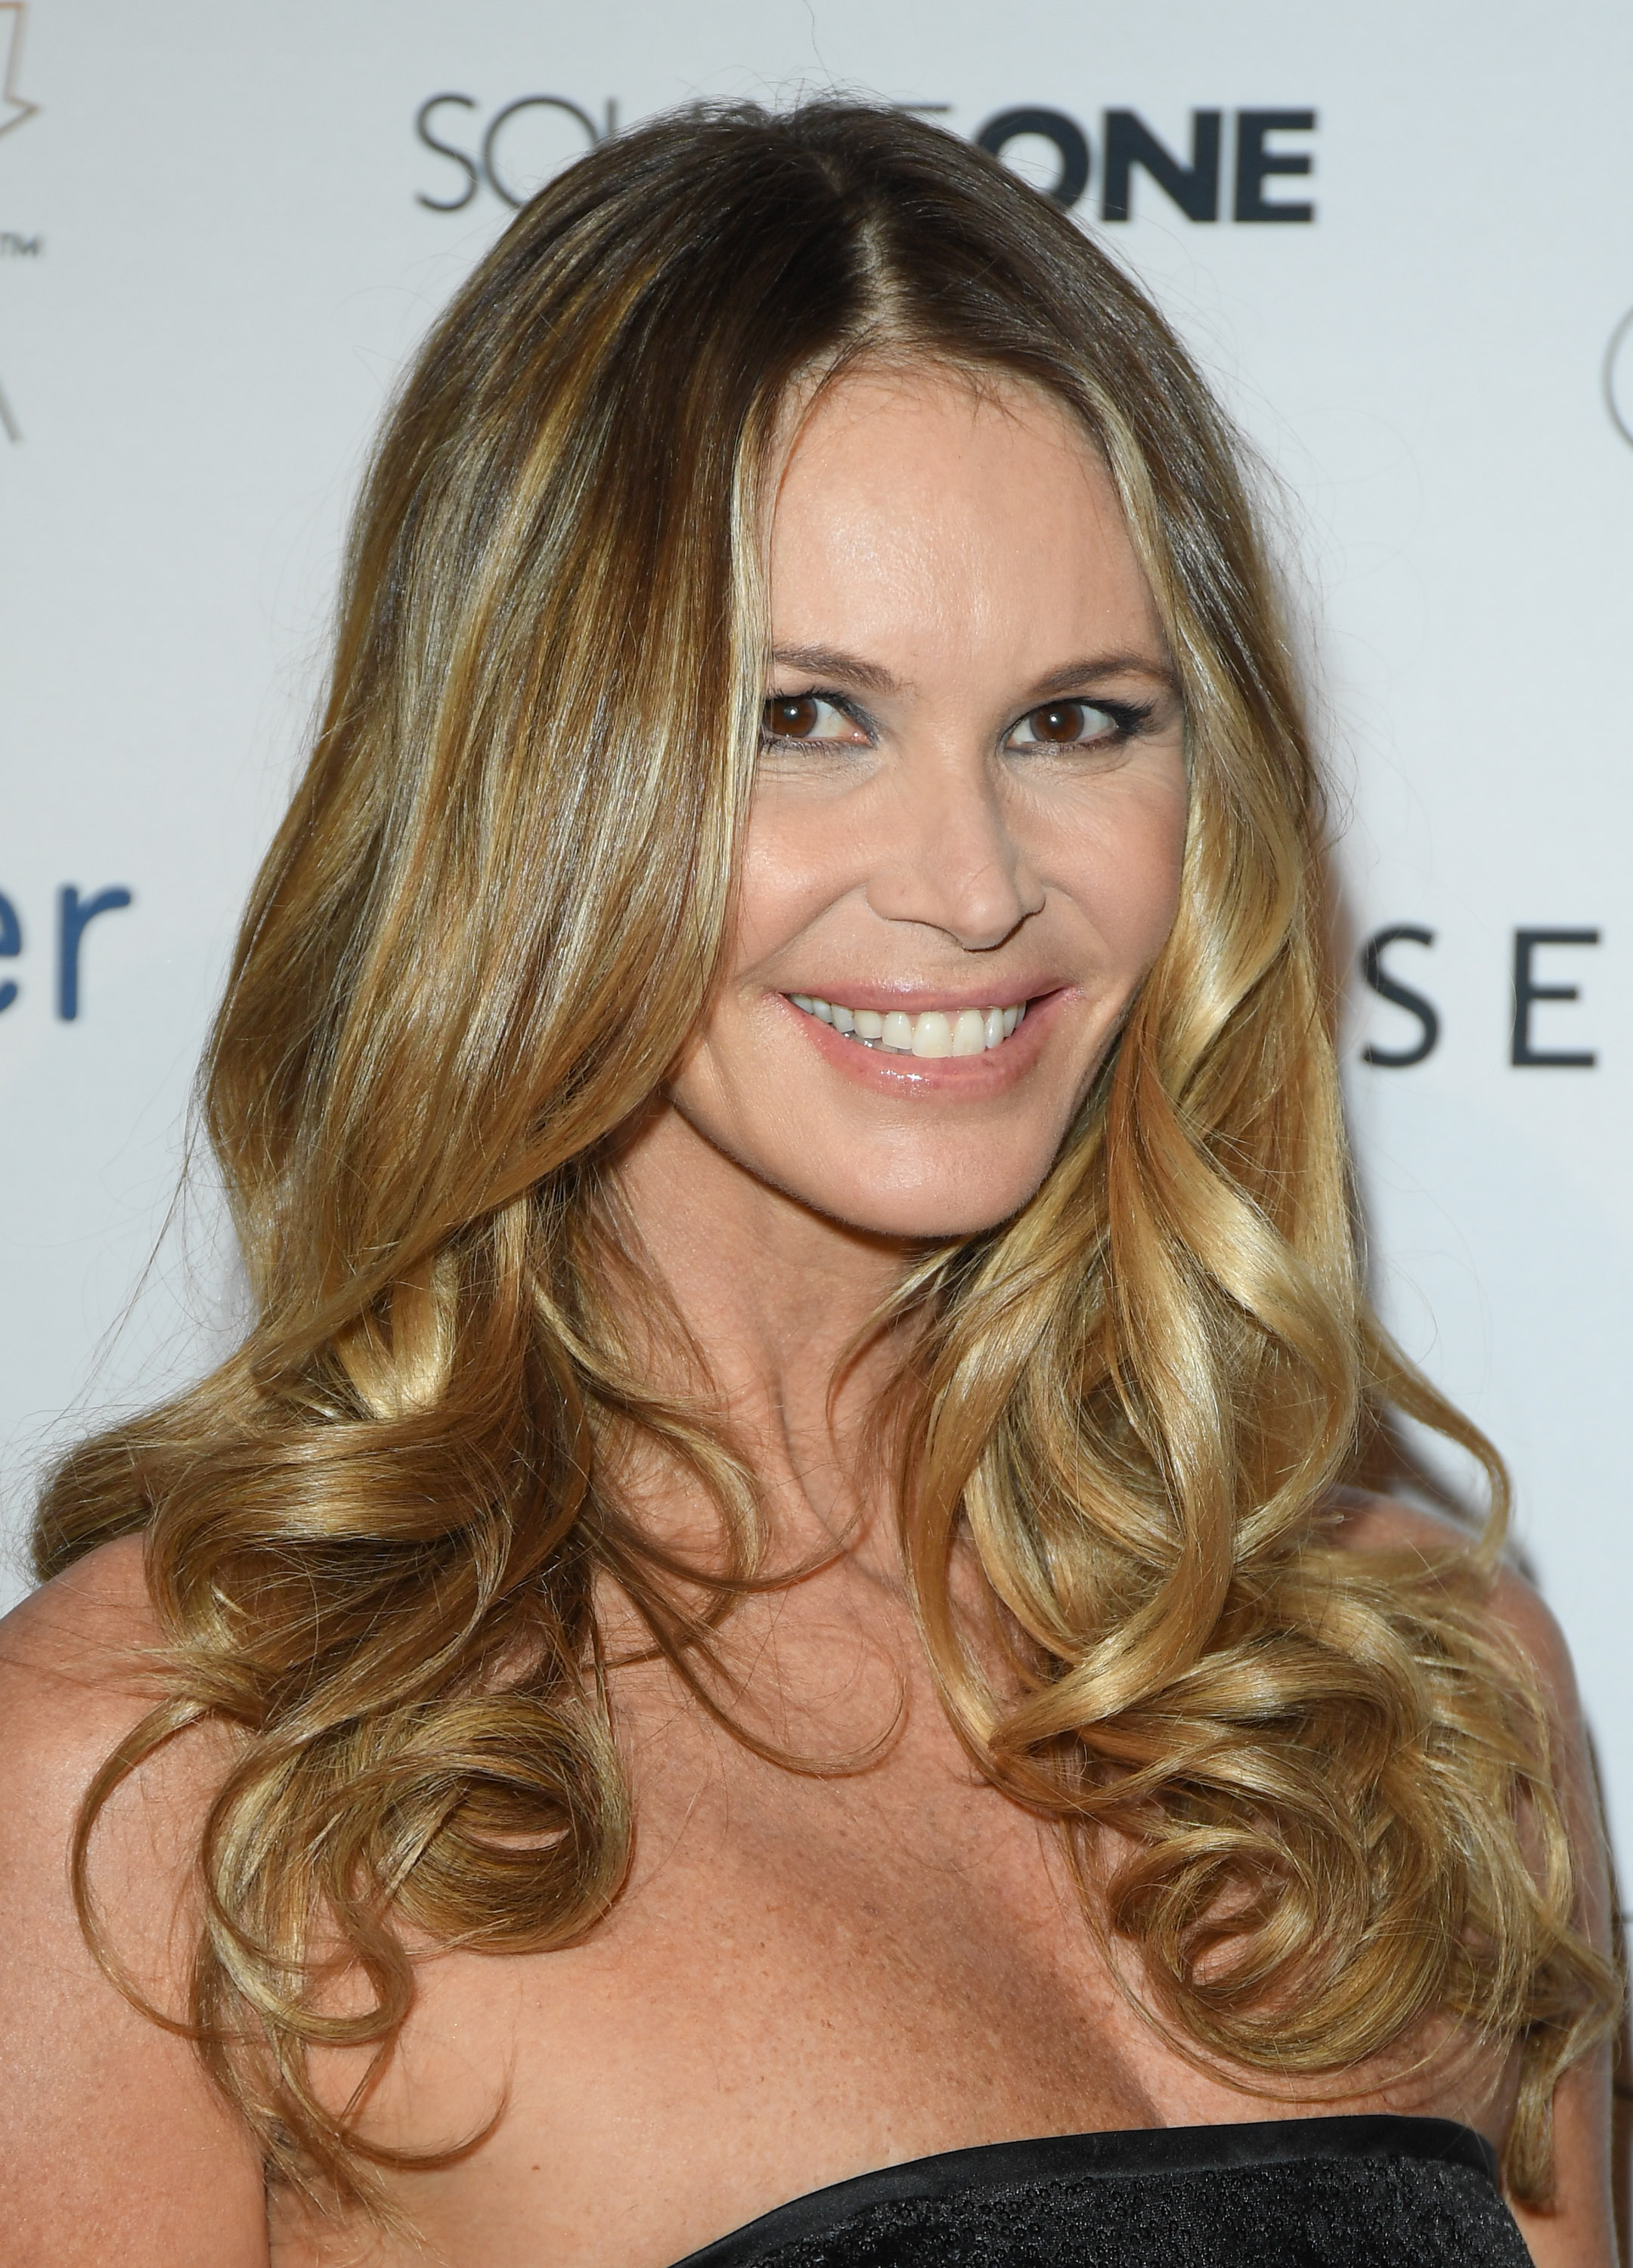 """After three decades in the spotlight <a href=""""http://style.nine.com.au/elle-macpherson"""" target=""""_blank"""" draggable=""""false"""">Australian supermodel Elle Macpherson </a>needs no introduction.<br /> <br /> The statuesque model first rose to public prominence in the '80s, where her caramel-coloured locks and glowing skin graced the covers of major magazines such as <em>Elle, Harpers's Bazaar, Vogue, GQ</em> and <em>Sports Illustrated</em> and earnt the Sydney-born model the title of 'The Body'.<br /> <br /> Over the last few years the mother-of-two has evolved into a successful businesswoman and TV host, favouring a sandy blonde hair shade and a fresh-faced complexion as her signature beauty look.<br /> <br /> We look back at some of Elle Macpherson's most memorable beauty moments throughout the years."""